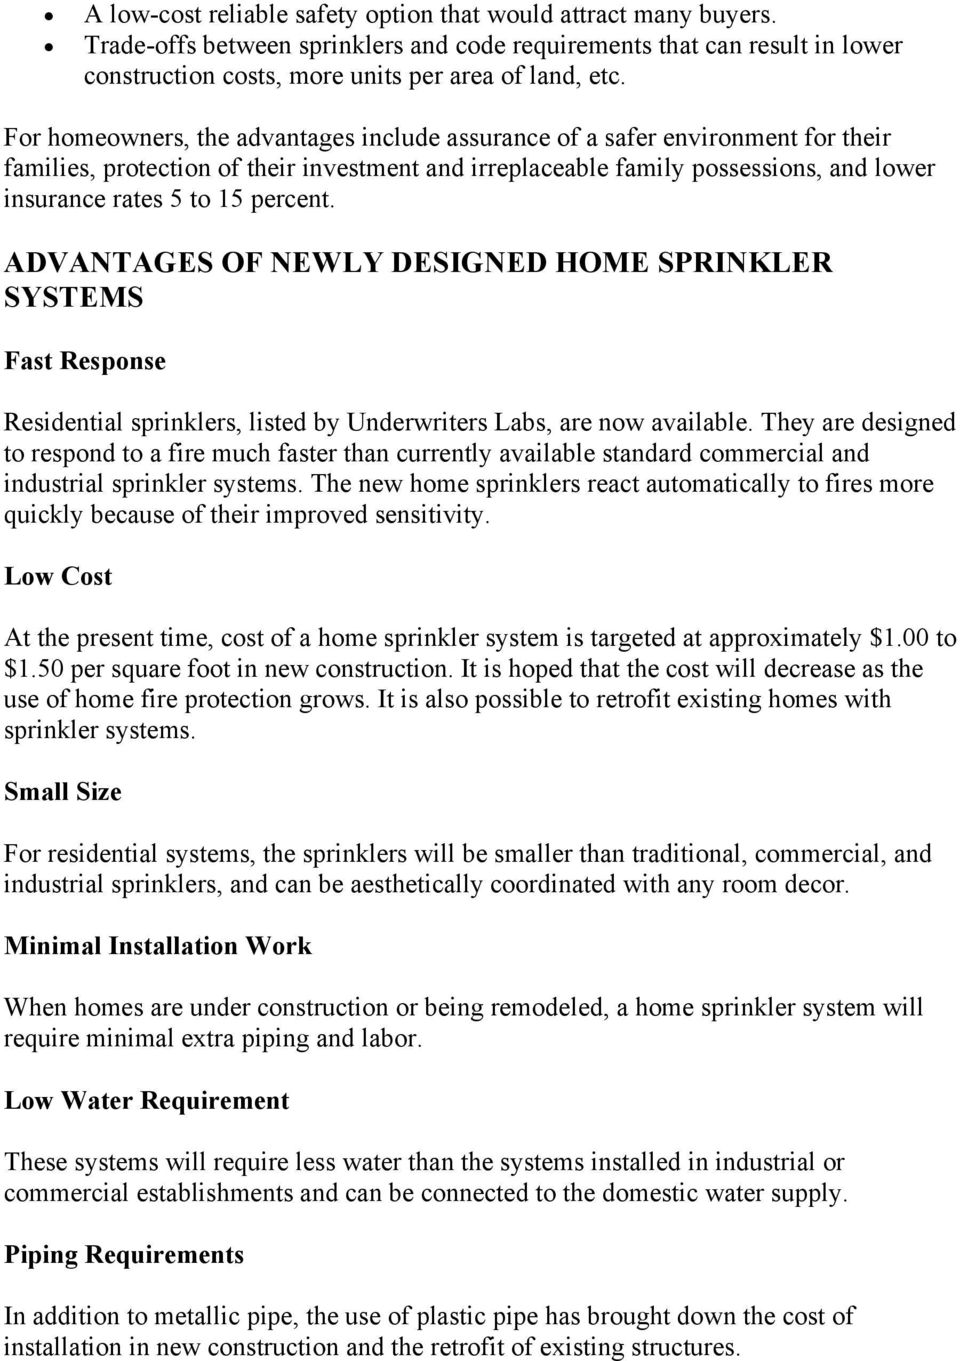 percent. ADVANTAGES OF NEWLY DESIGNED HOME SPRINKLER SYSTEMS Fast Response Residential sprinklers, listed by Underwriters Labs, are now available.